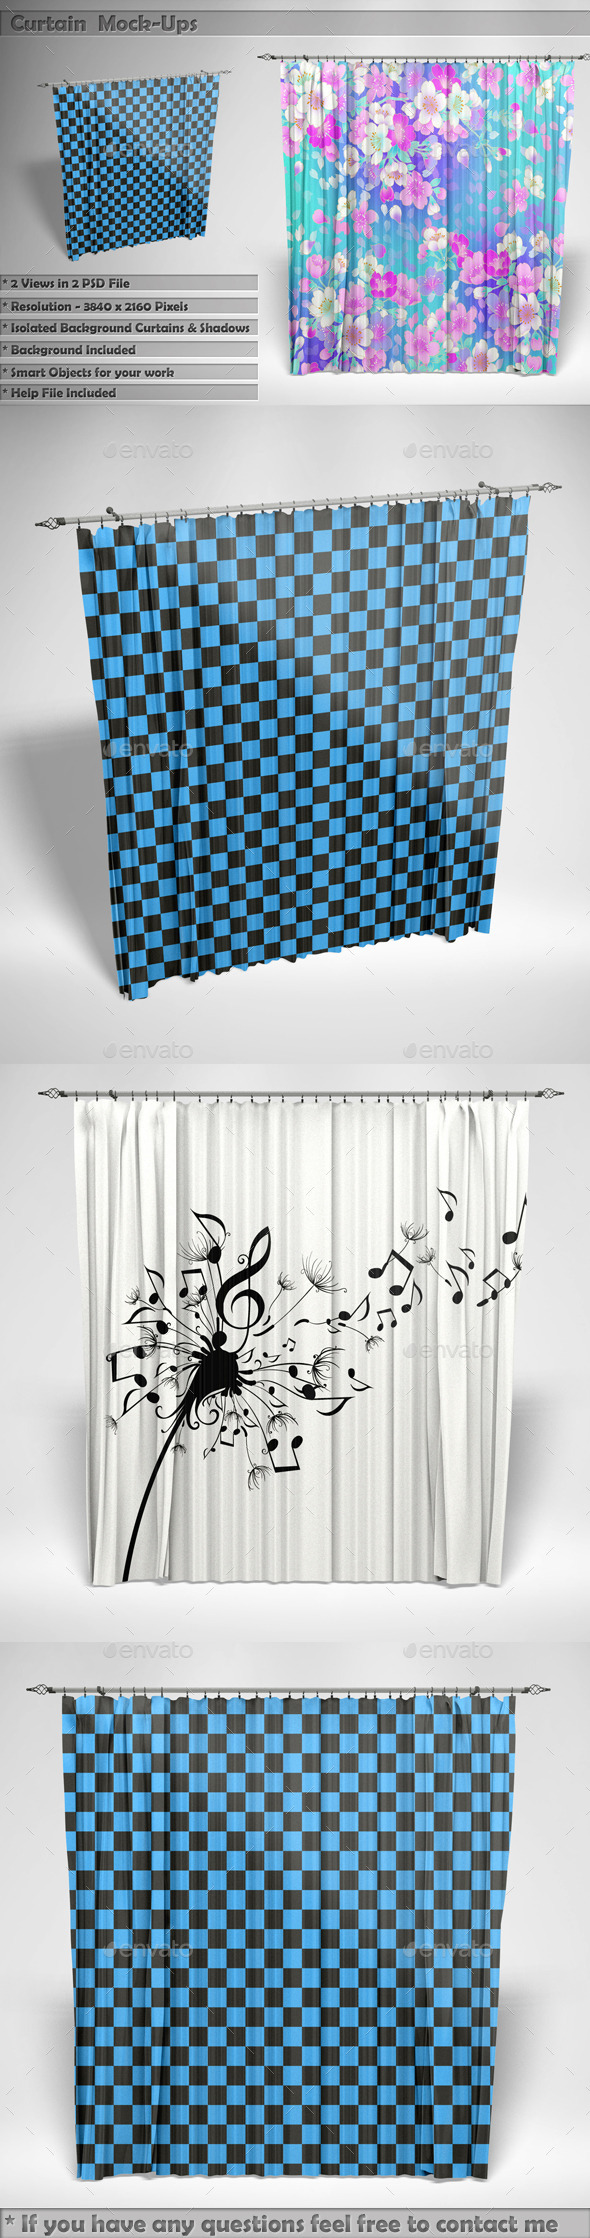 Curtain Mockups - Miscellaneous Product Mock-Ups